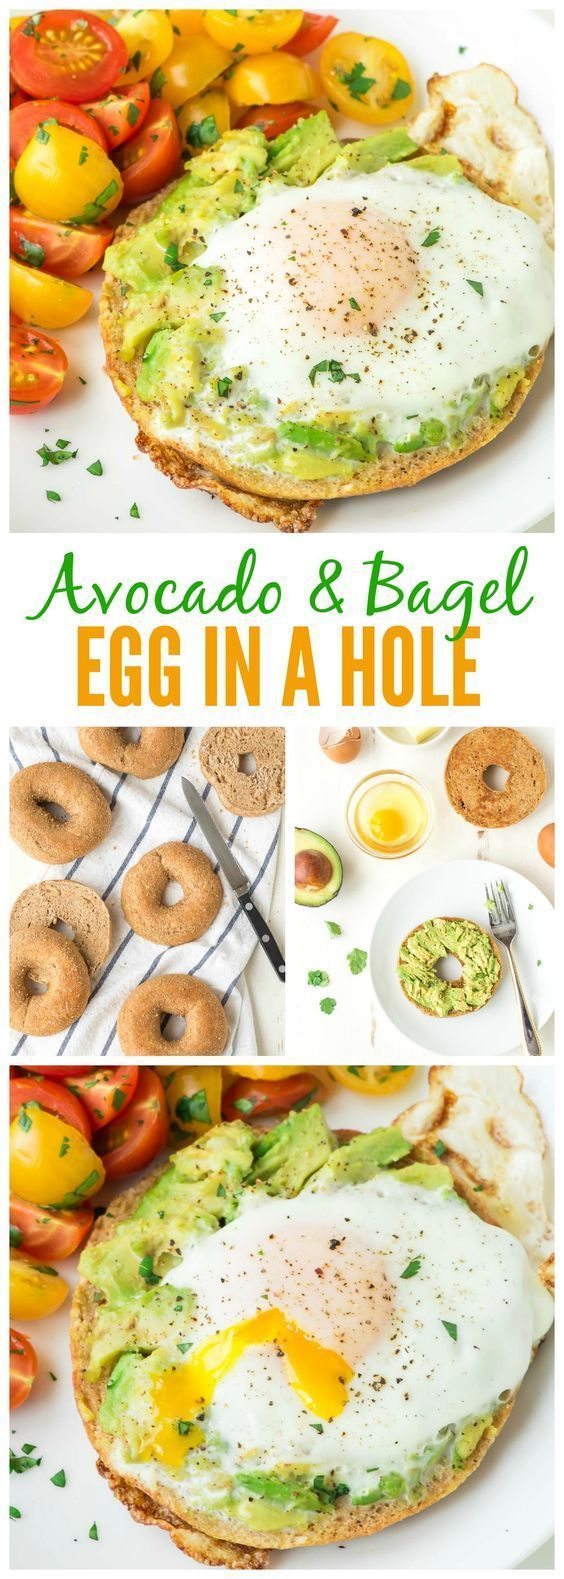 Egg in a Hole, cooked inside a bagel with smashed avocado on top. Our family's favorite breakfast, and it's perfect for easy, healthy lunches and dinners too! Recipe at http://www.wellplated.com | /wellplated/